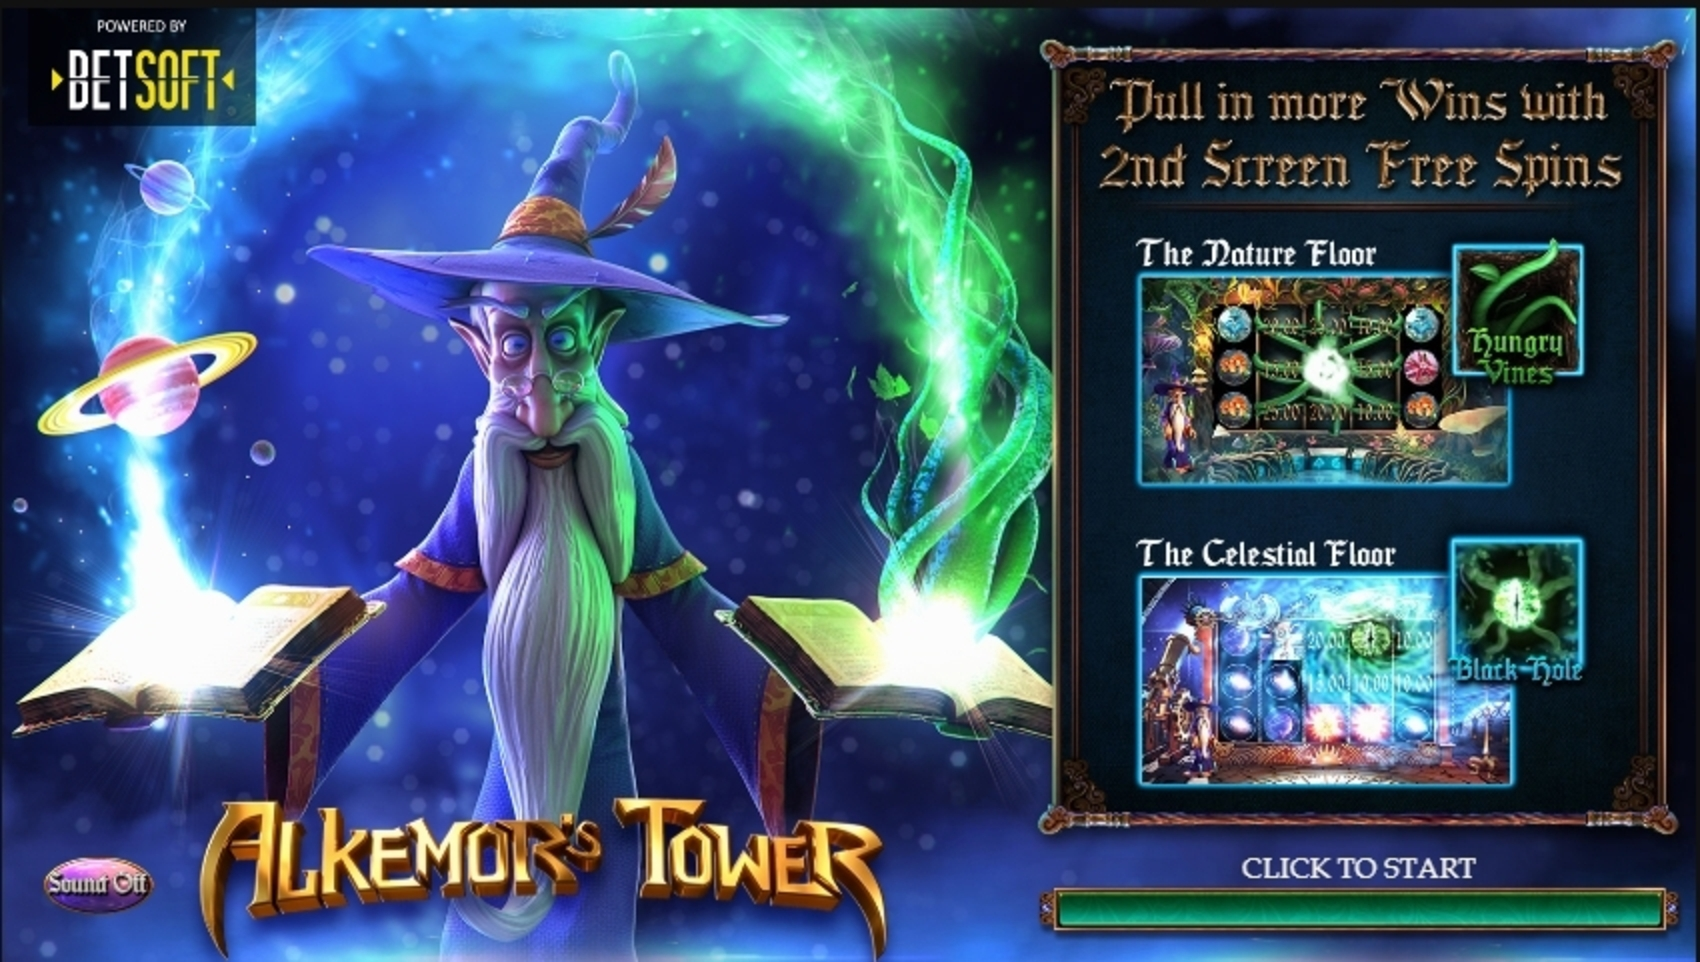 Play Alkemors Tower Free Casino Slot Game by Betsoft